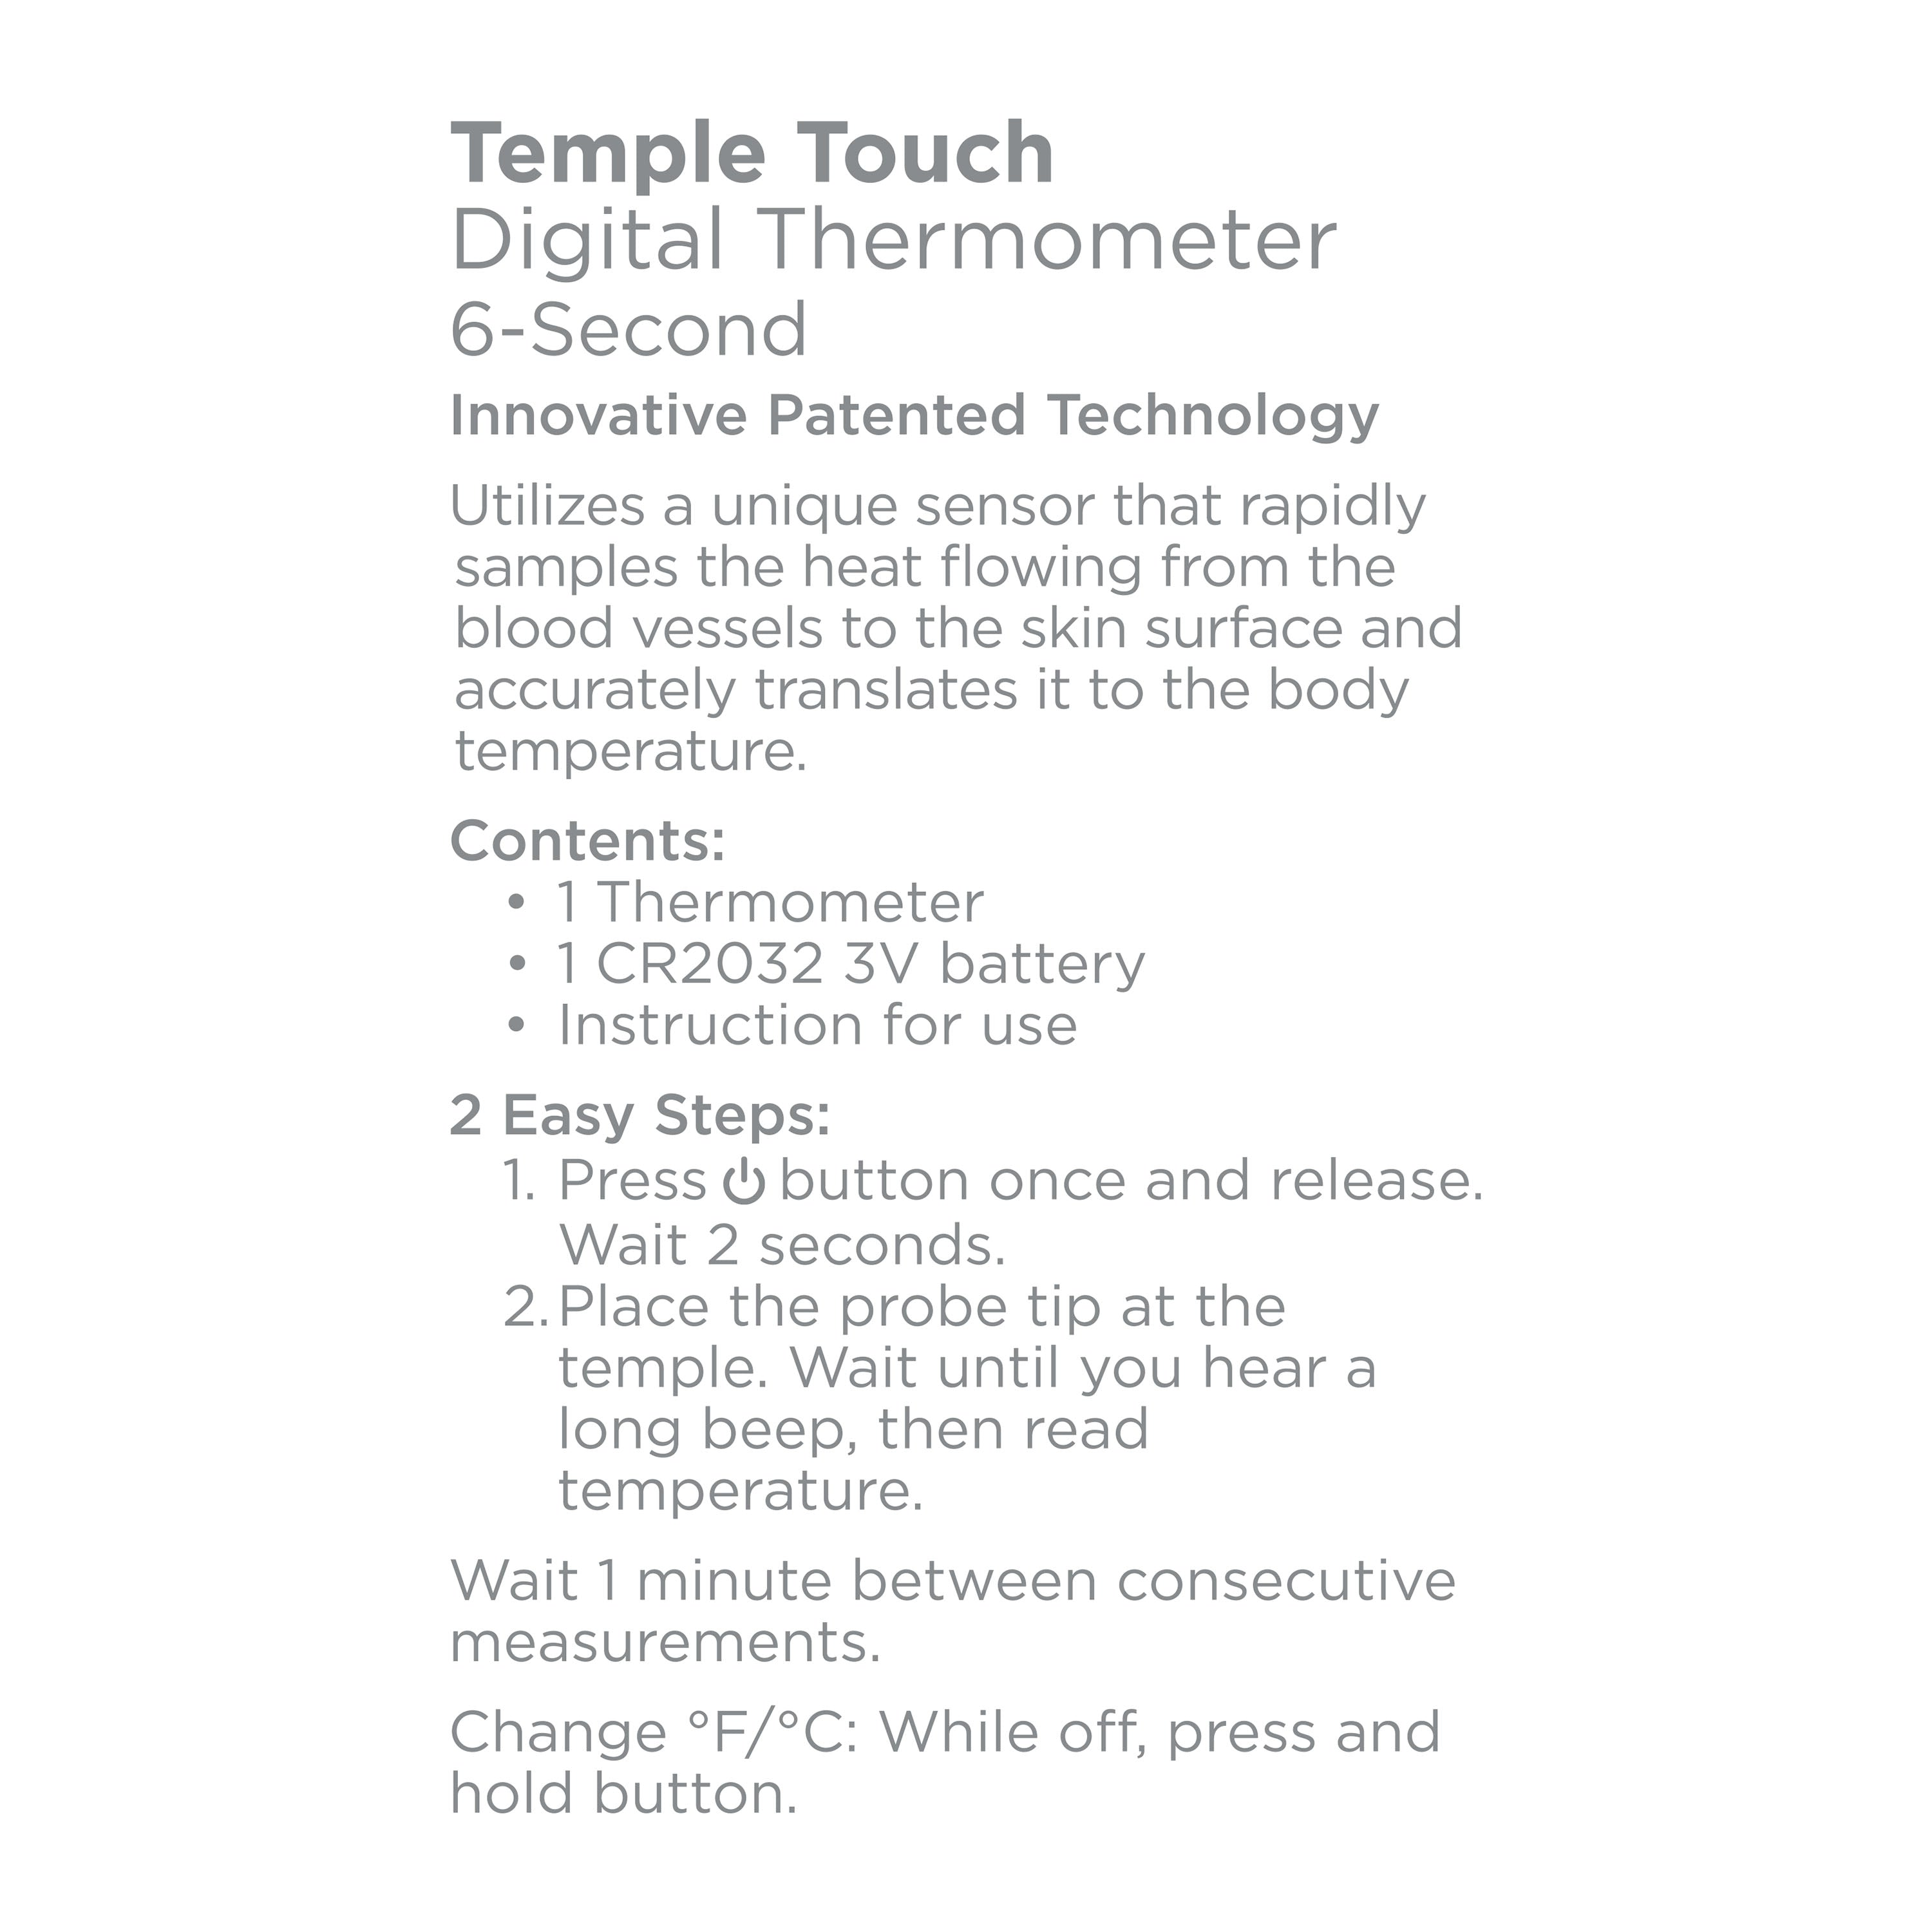 Equate Temple Touch 6-Second Digital Thermometer